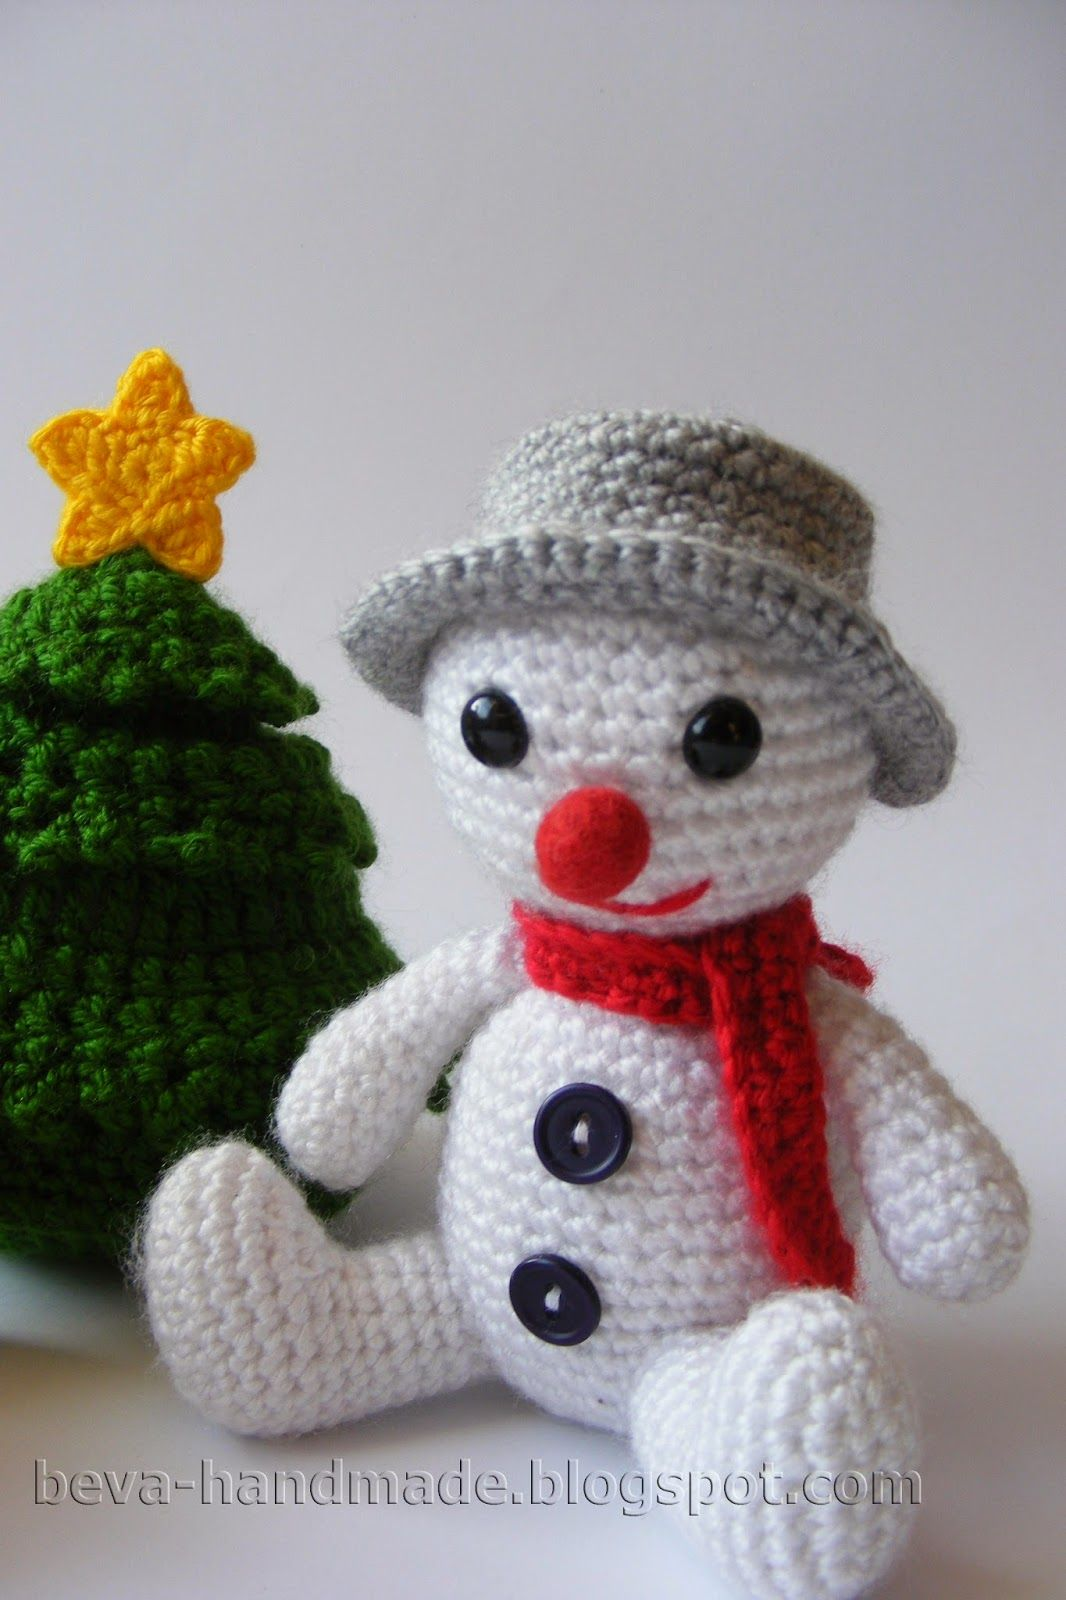 How to connect a merry snowman with an amigurumi with his hands with a description and a photo